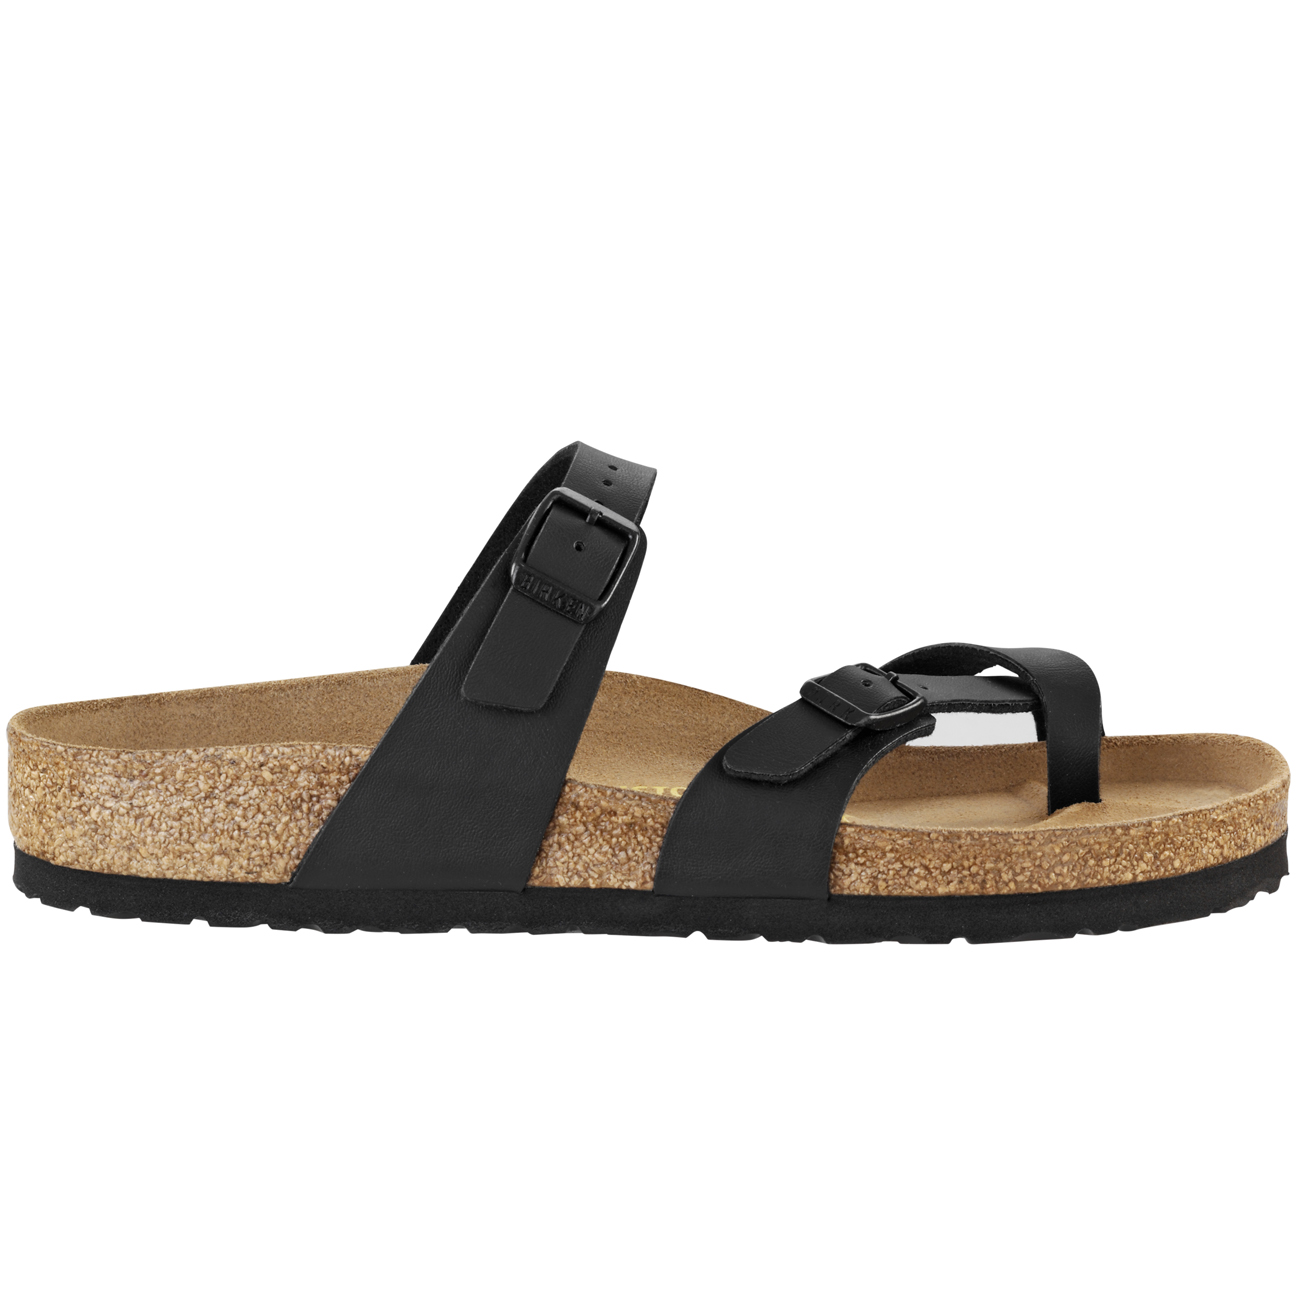 d85ad7e3ae79 Womens Birkenstock Mayari Holiday Birko-Flor Beach Summer Flat Sandals US  5-11